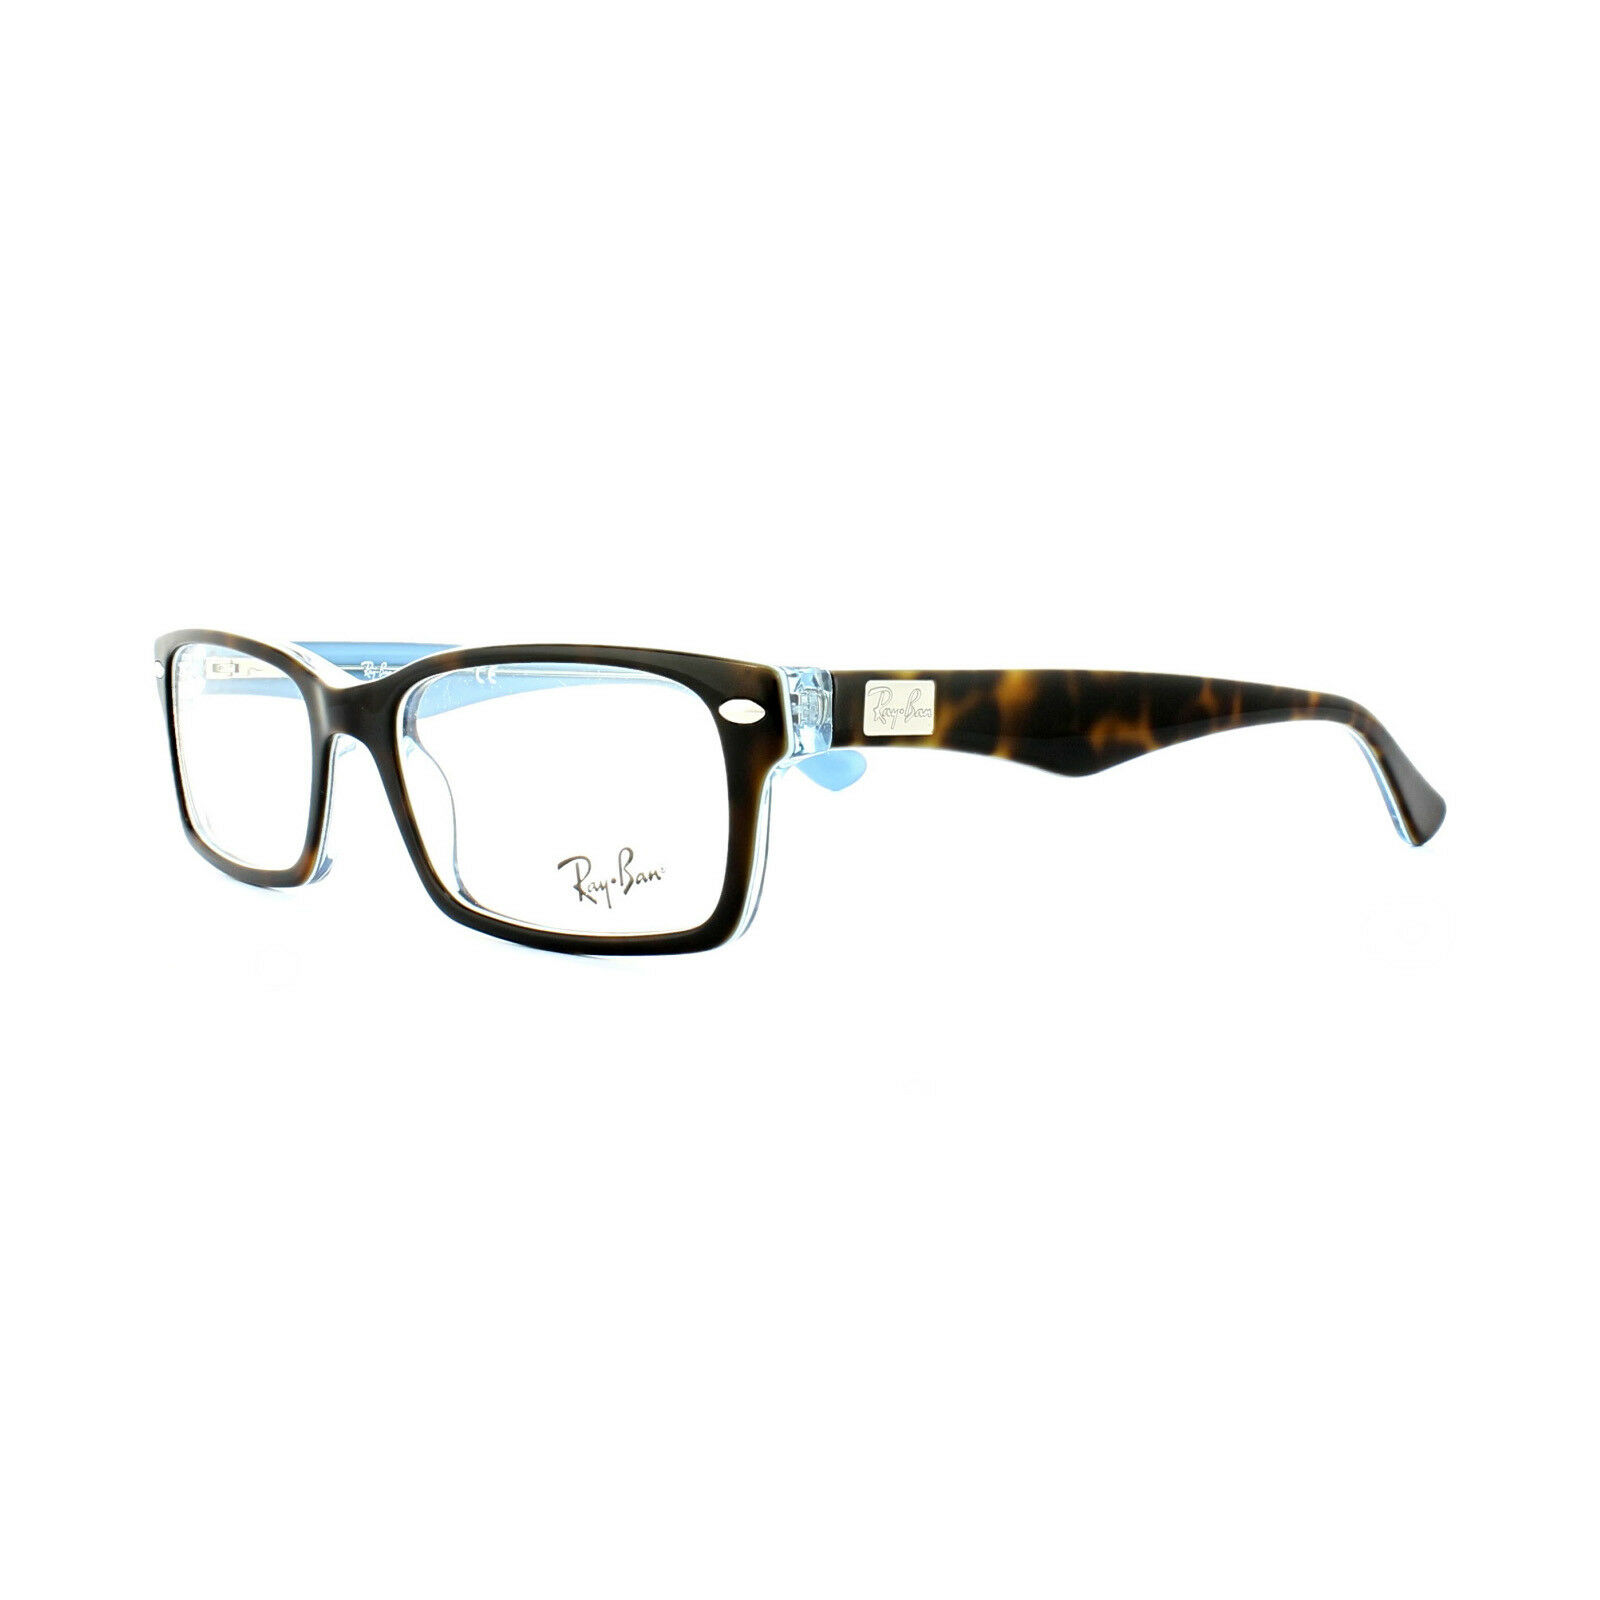 a07773be87 ... EAN 8053672629286 product image for Ray-ban 5206 5023